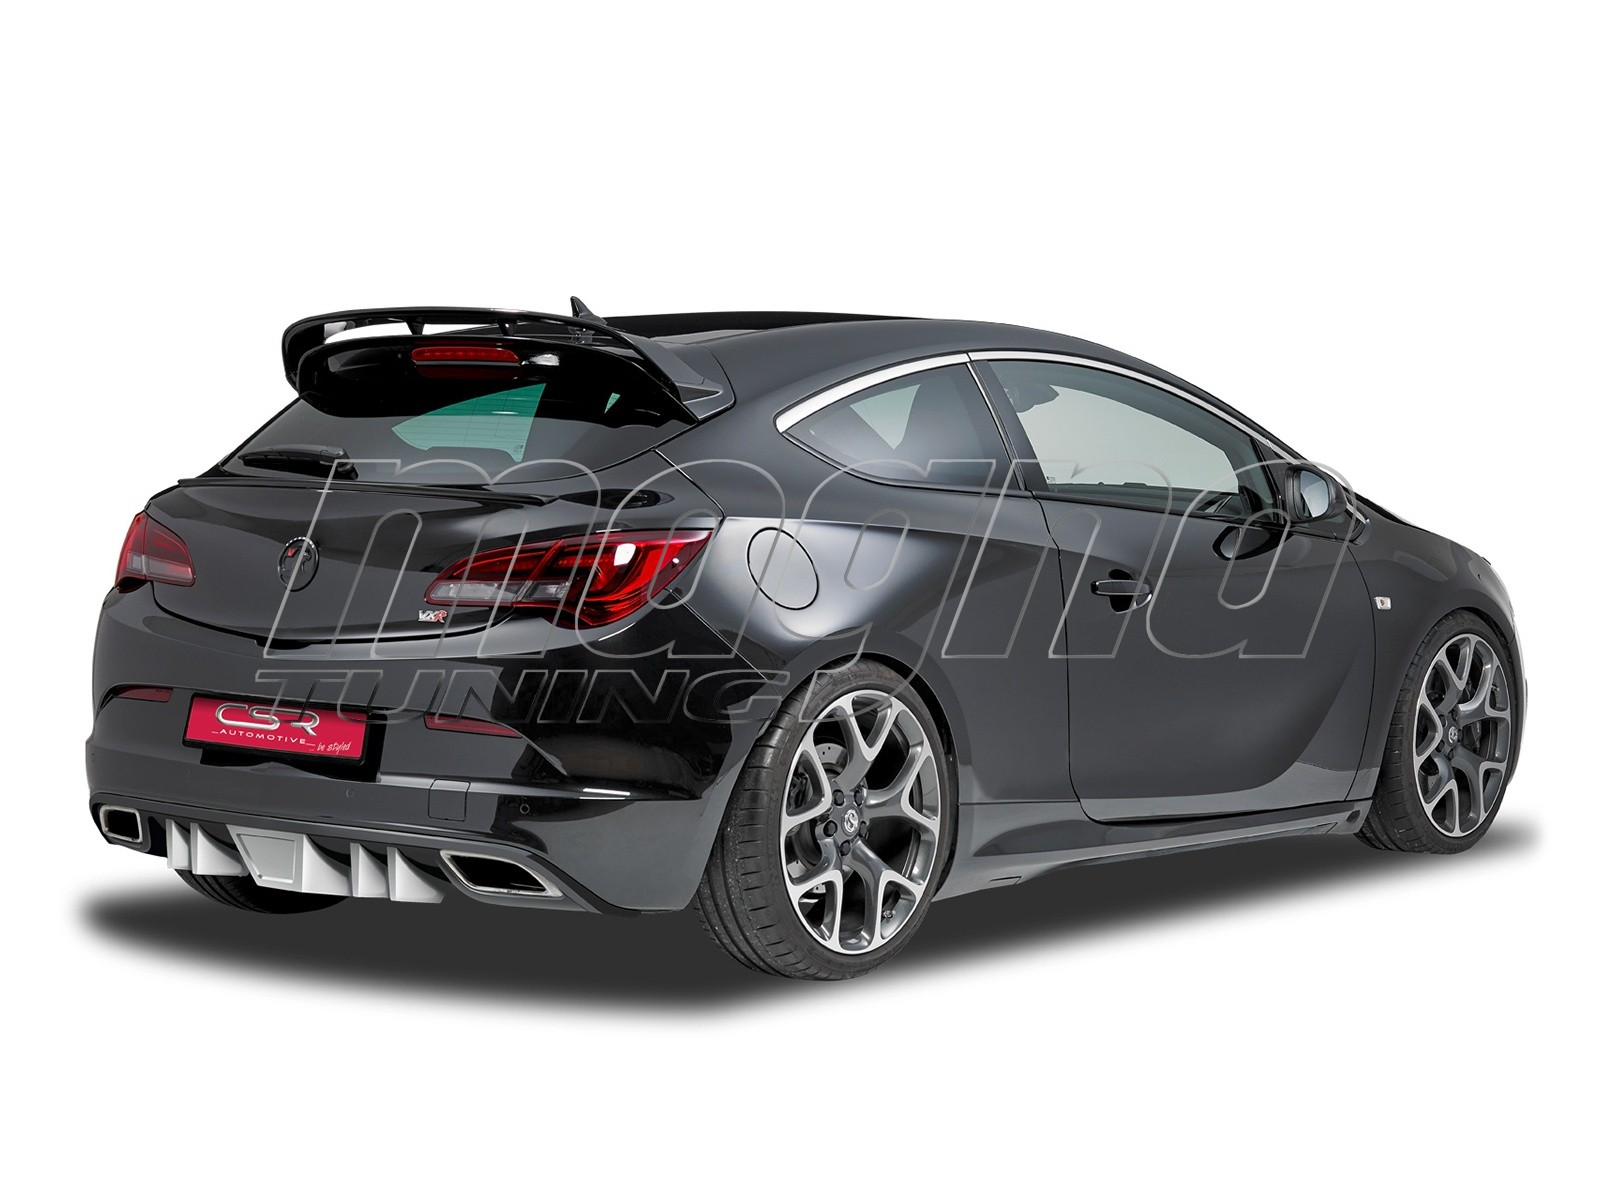 opel astra j gtc opc crono rear bumper extension. Black Bedroom Furniture Sets. Home Design Ideas